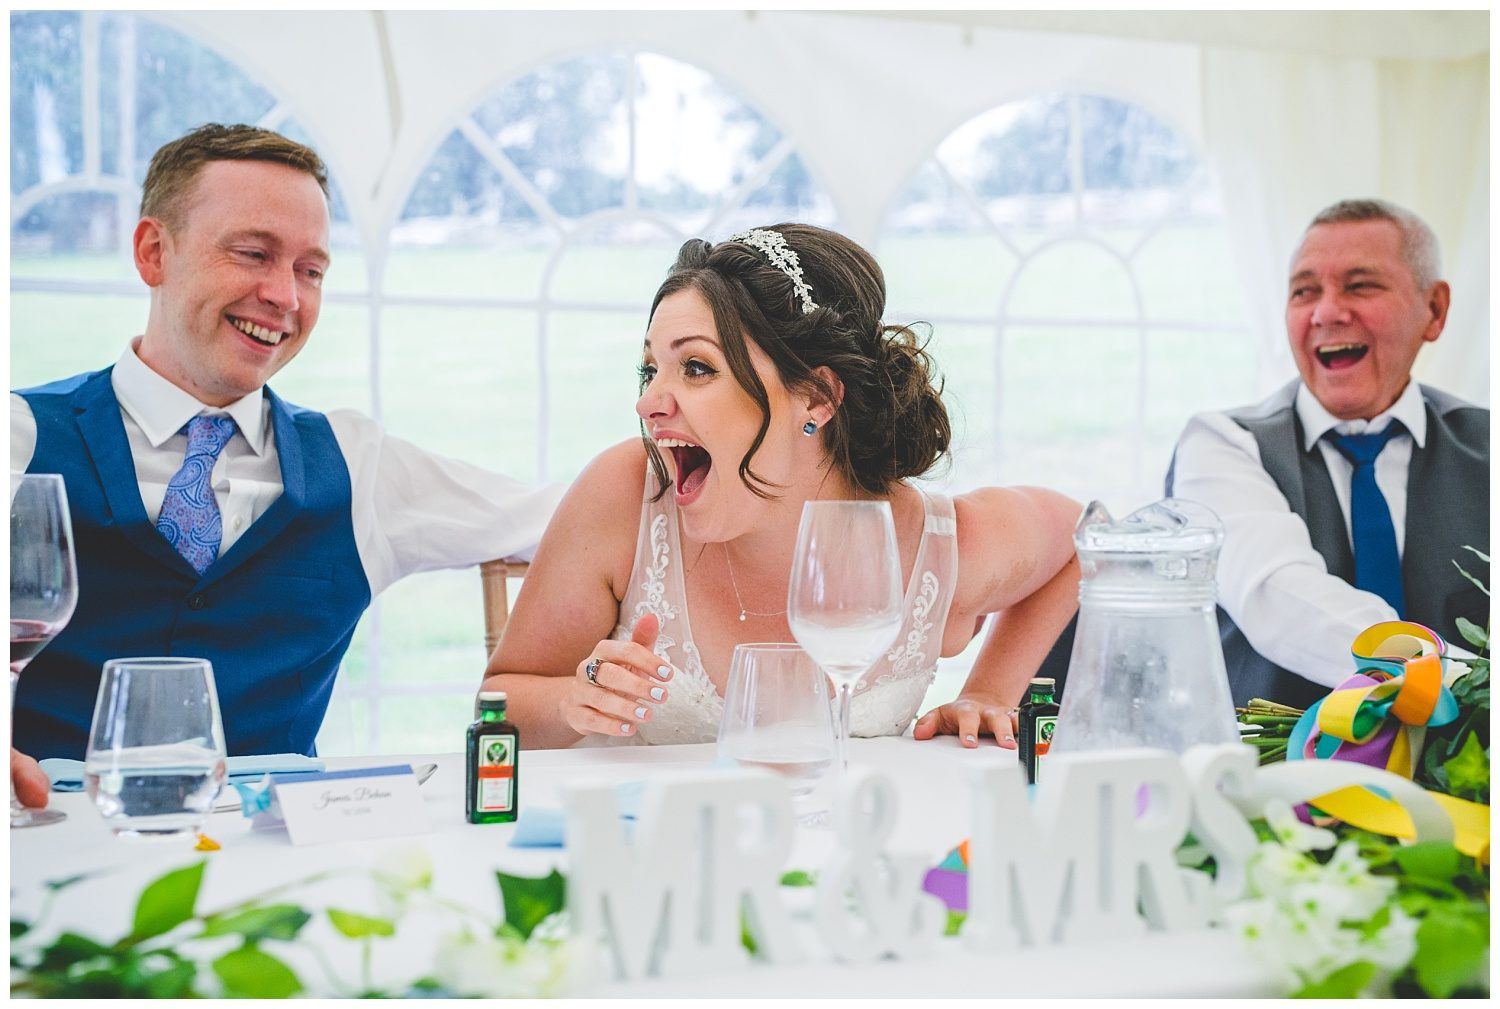 Festival themed wedding at Clawdd Offa Farm